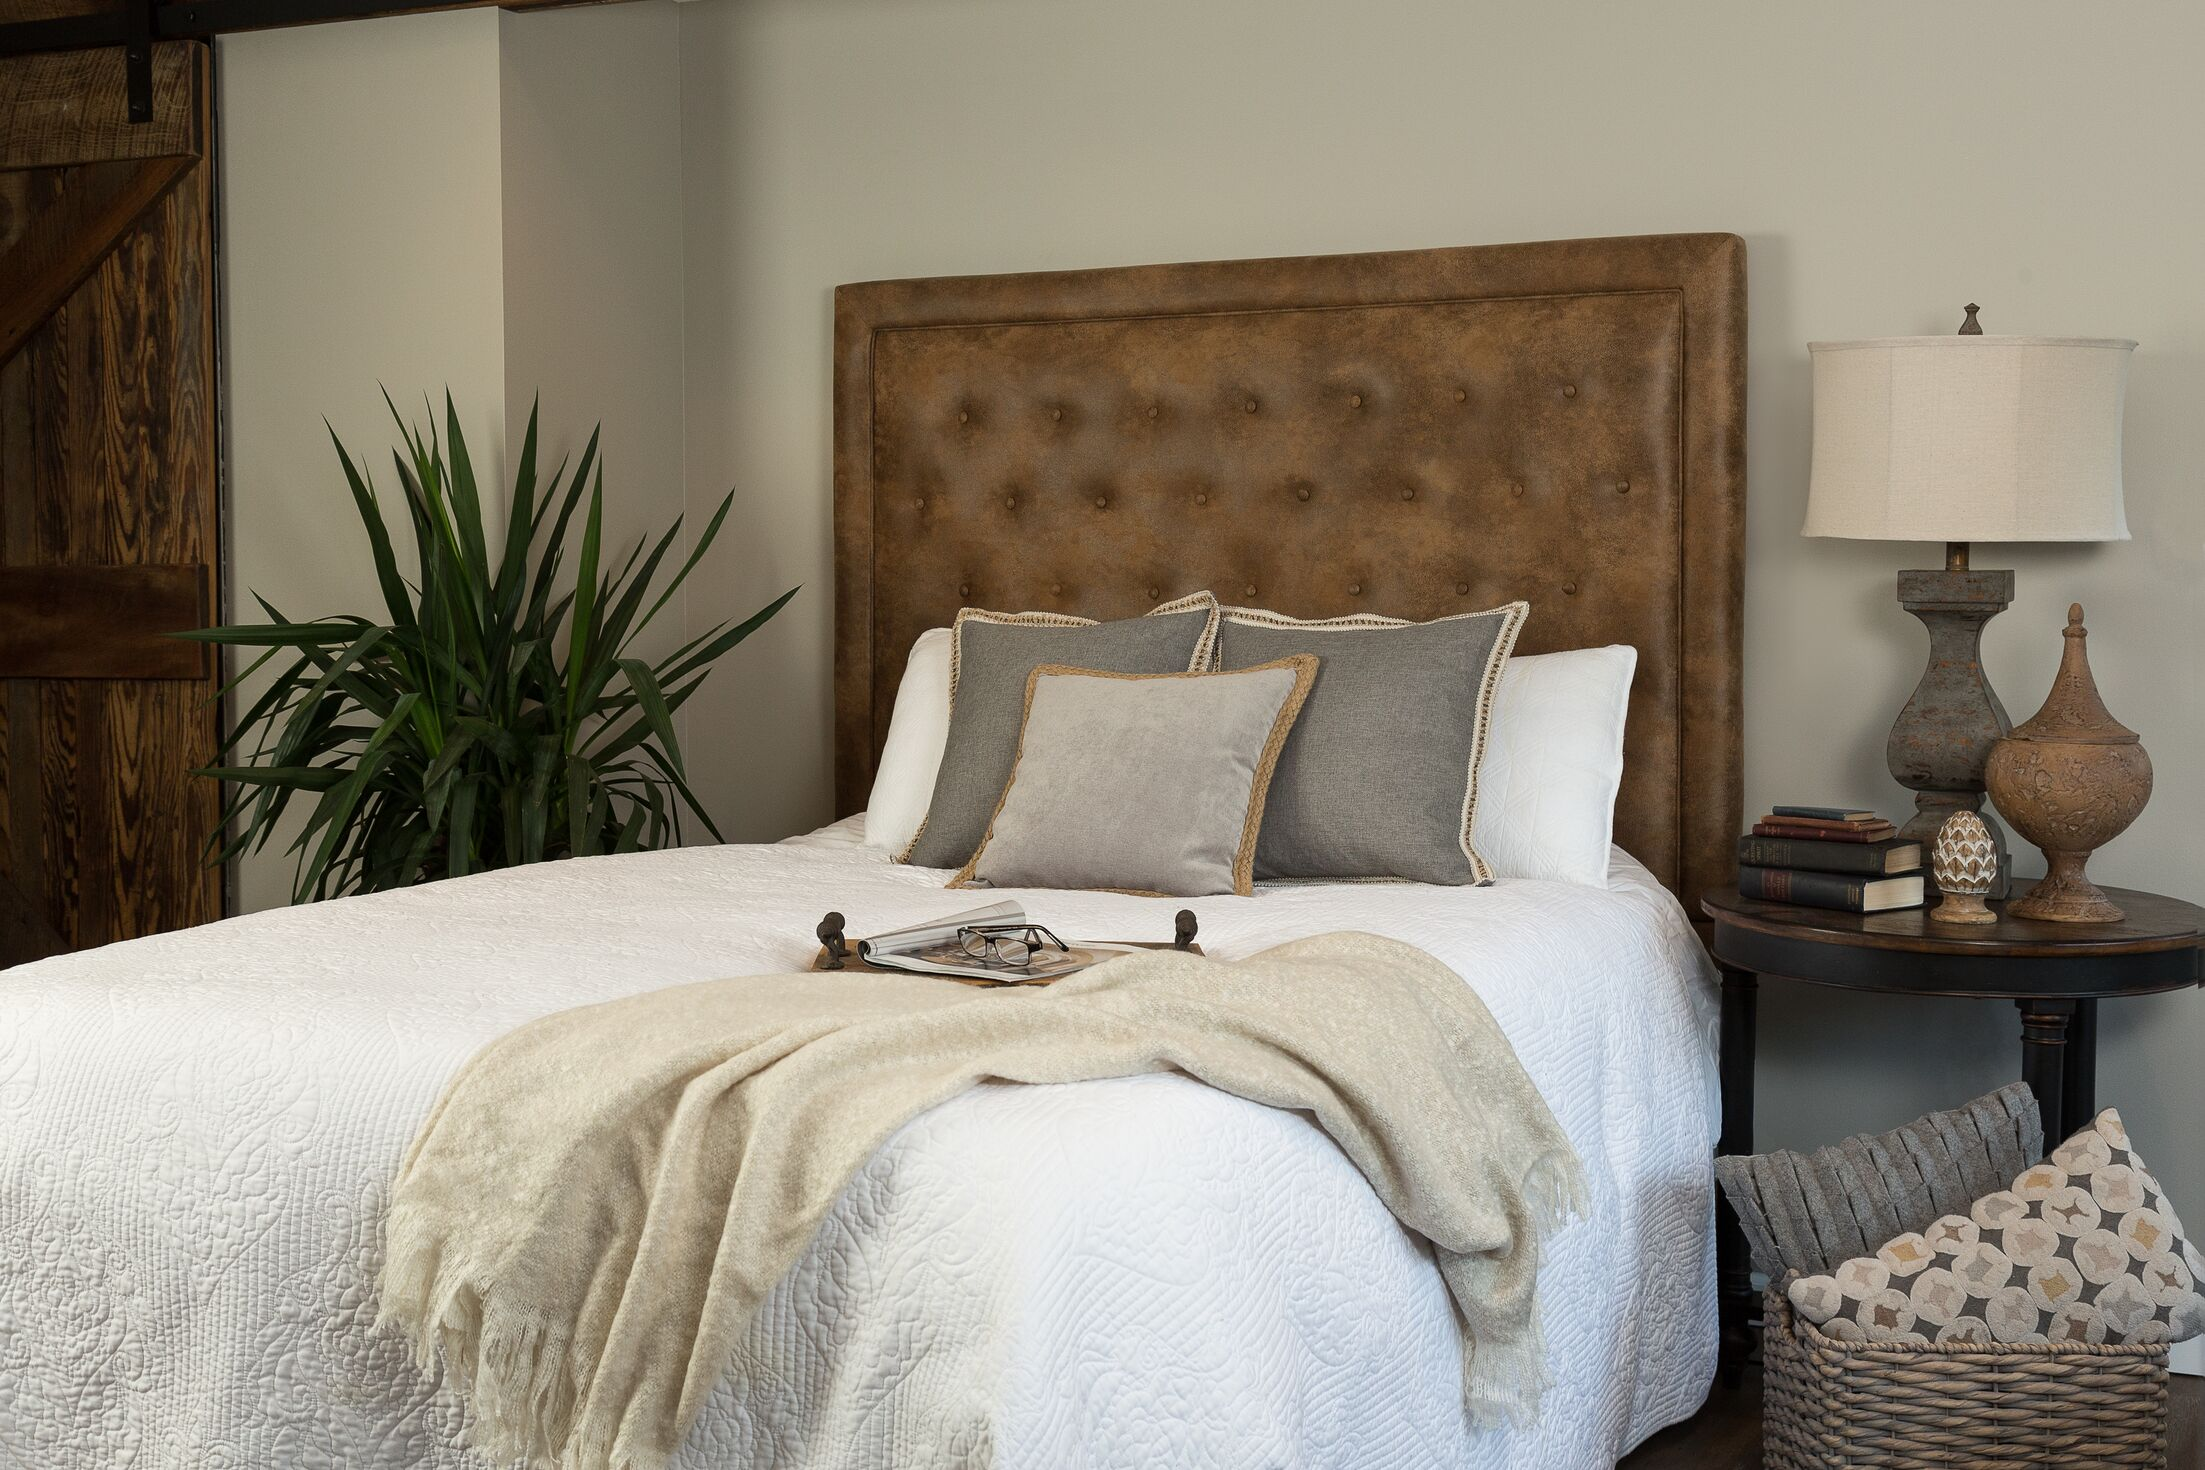 Mcalpin Queen Upholstered Panel Headboard Upholstery: Polyester Brown